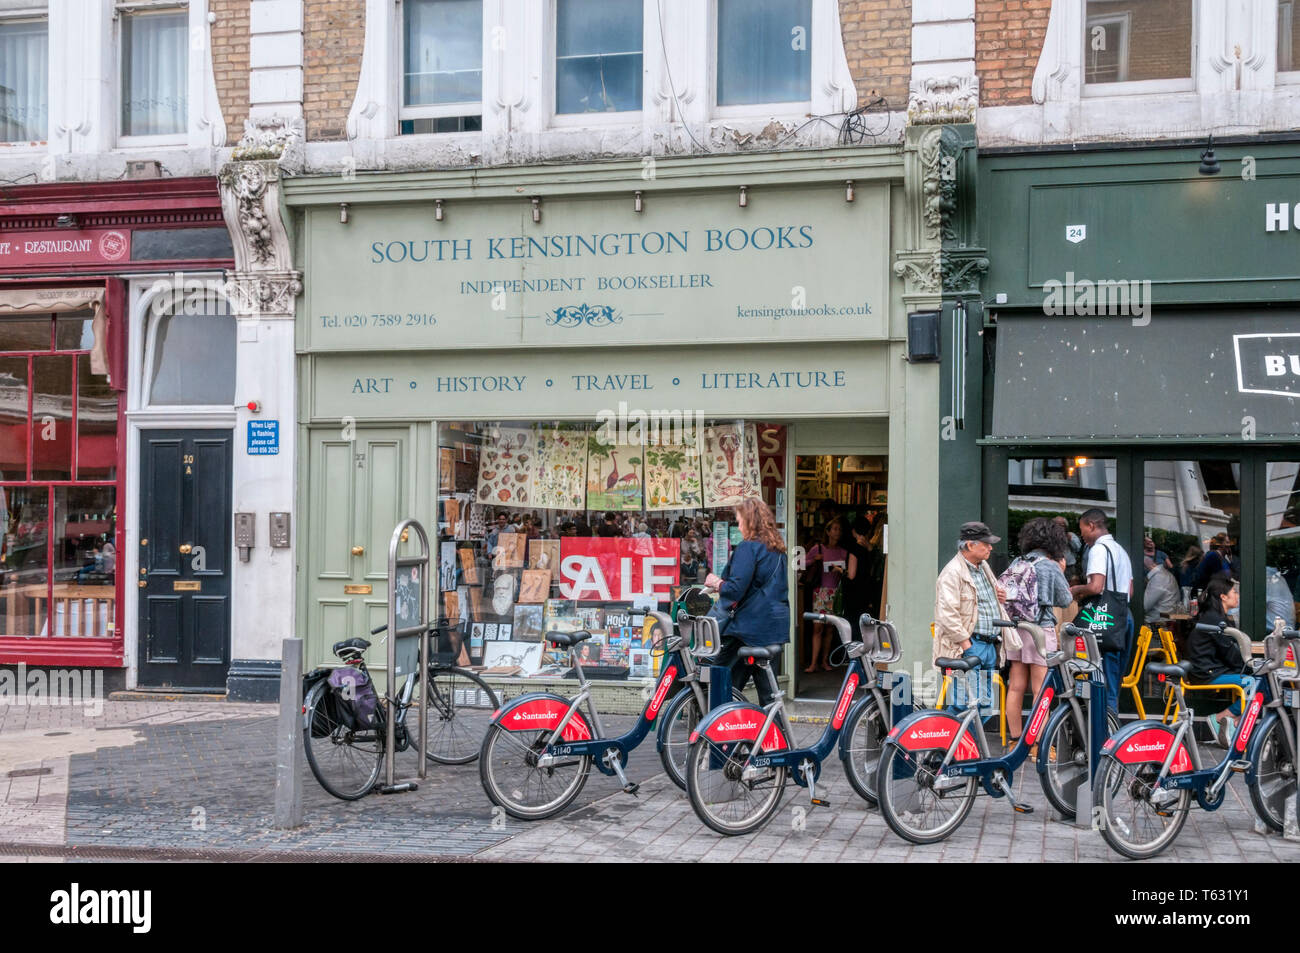 South Kensington Books, an independent bookseller. - Stock Image